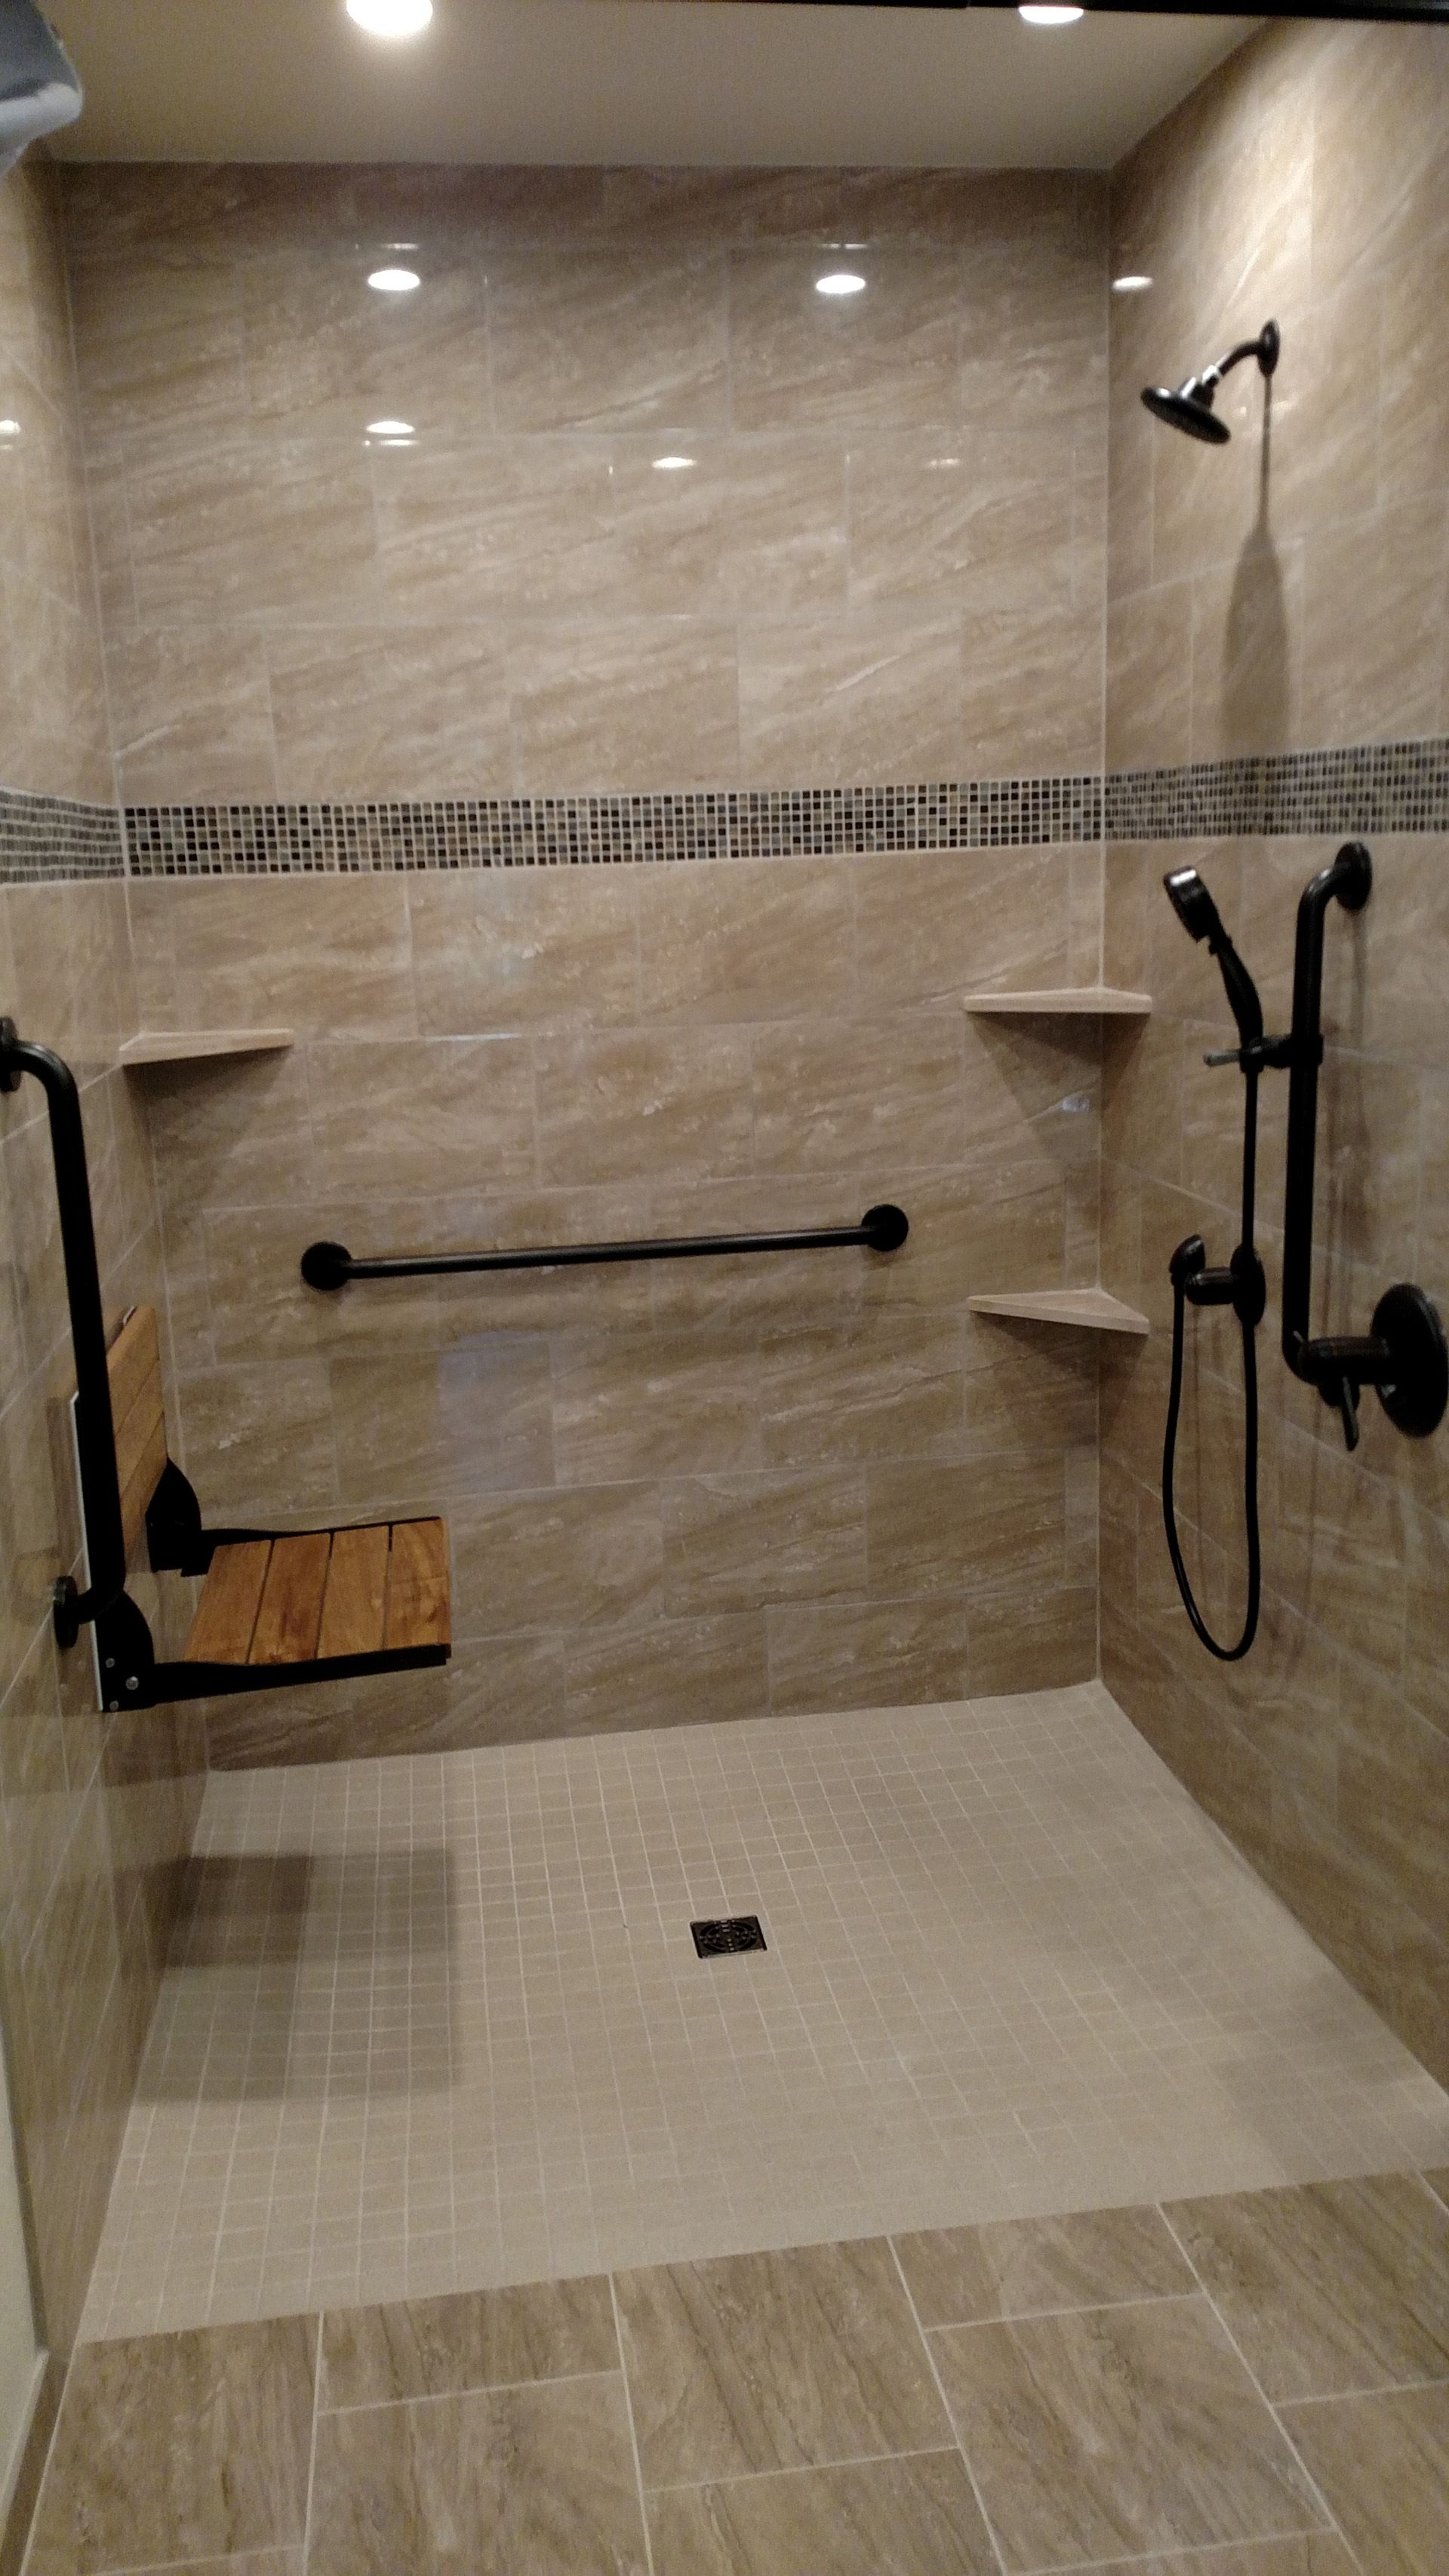 Accessible Showers - Aging in Place Remodeling